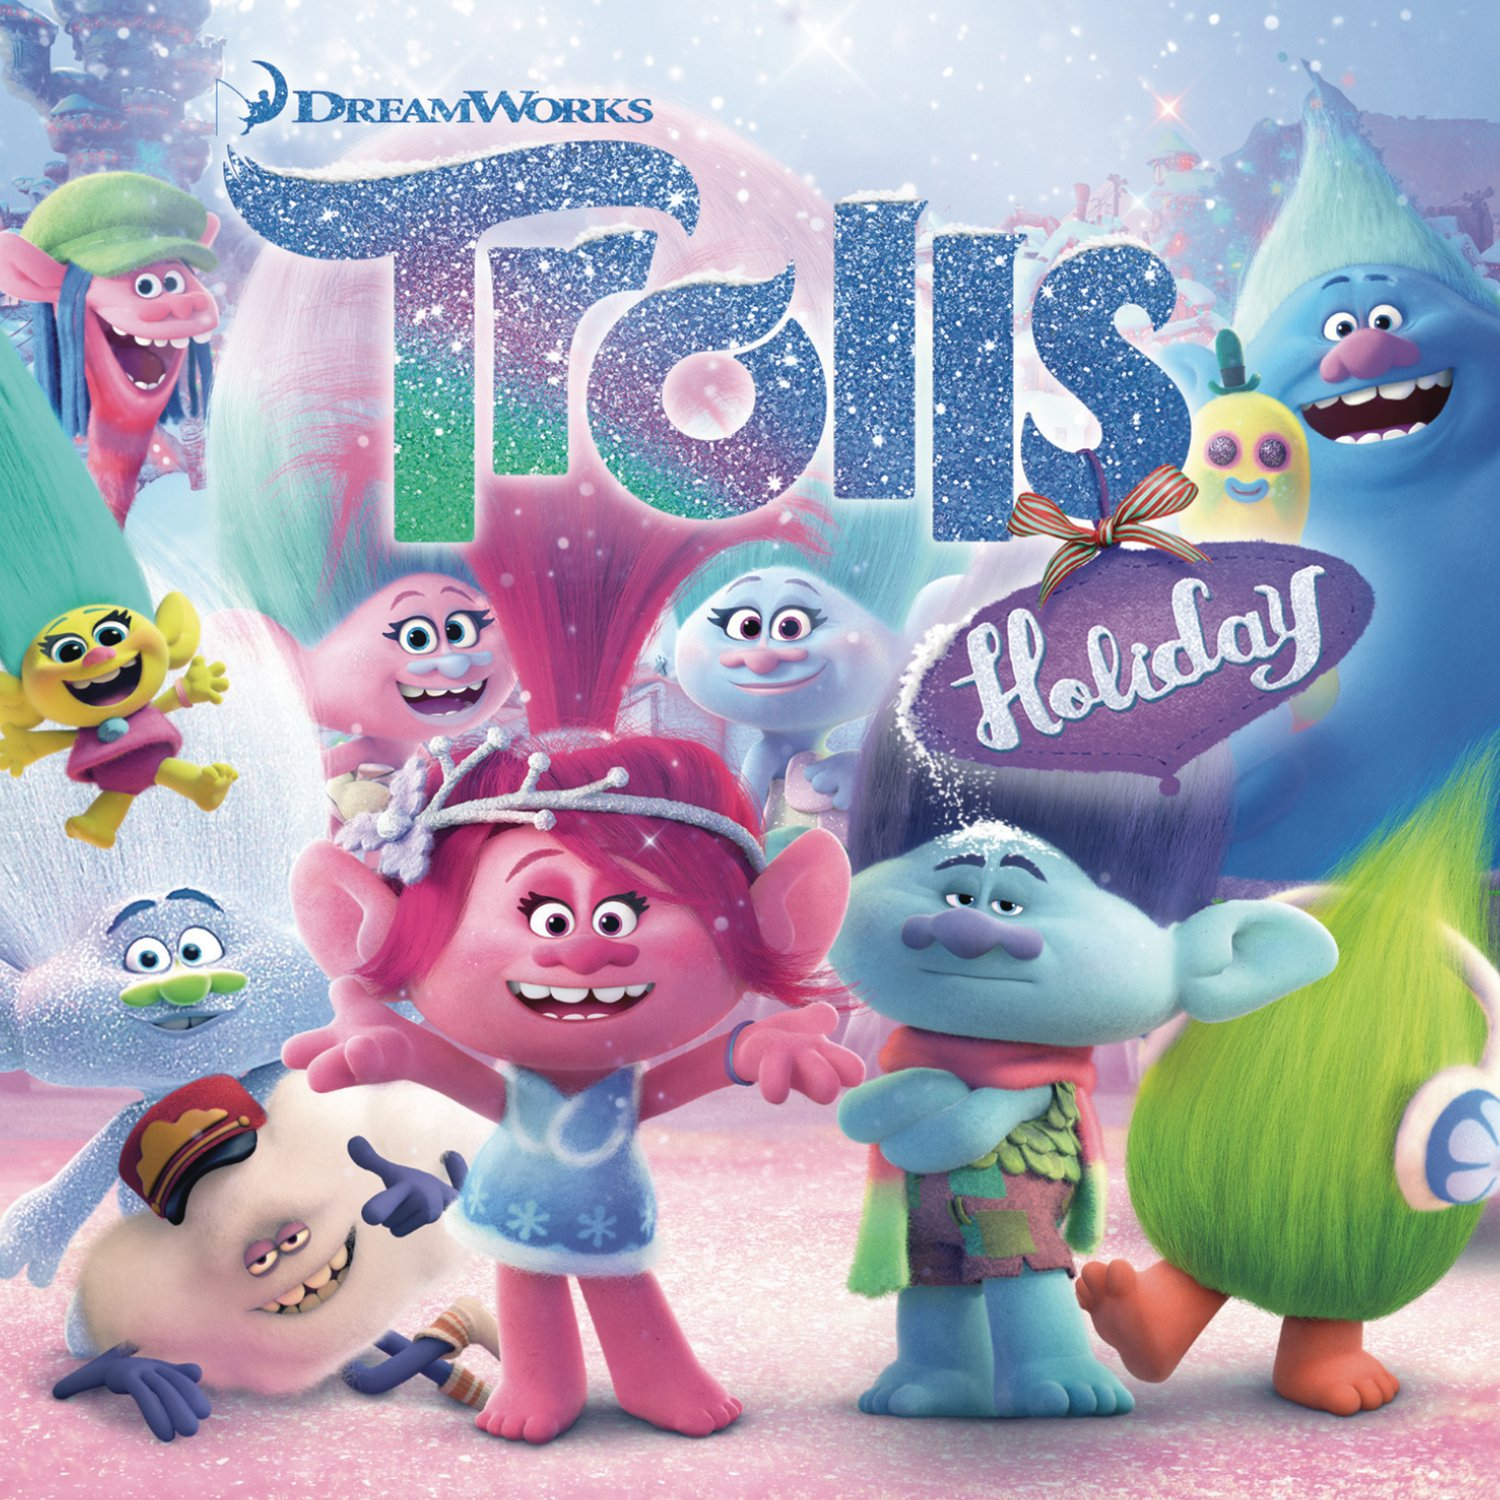 Trolls Holiday - Netflix Christmas Specials